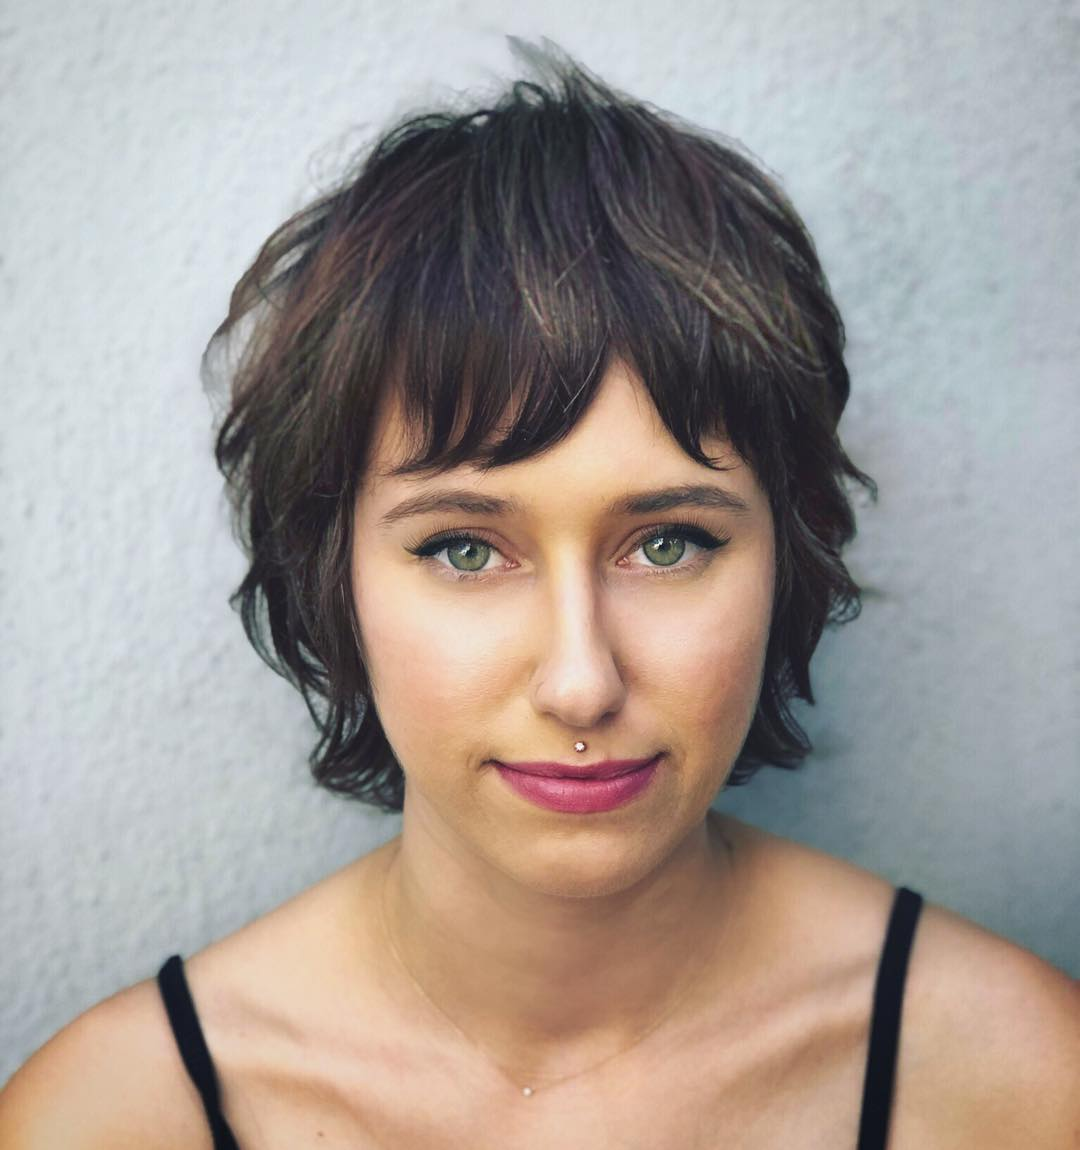 Shaggy Brunette Crop with Undone Texture and Fringe Bangs Short Hairstyle